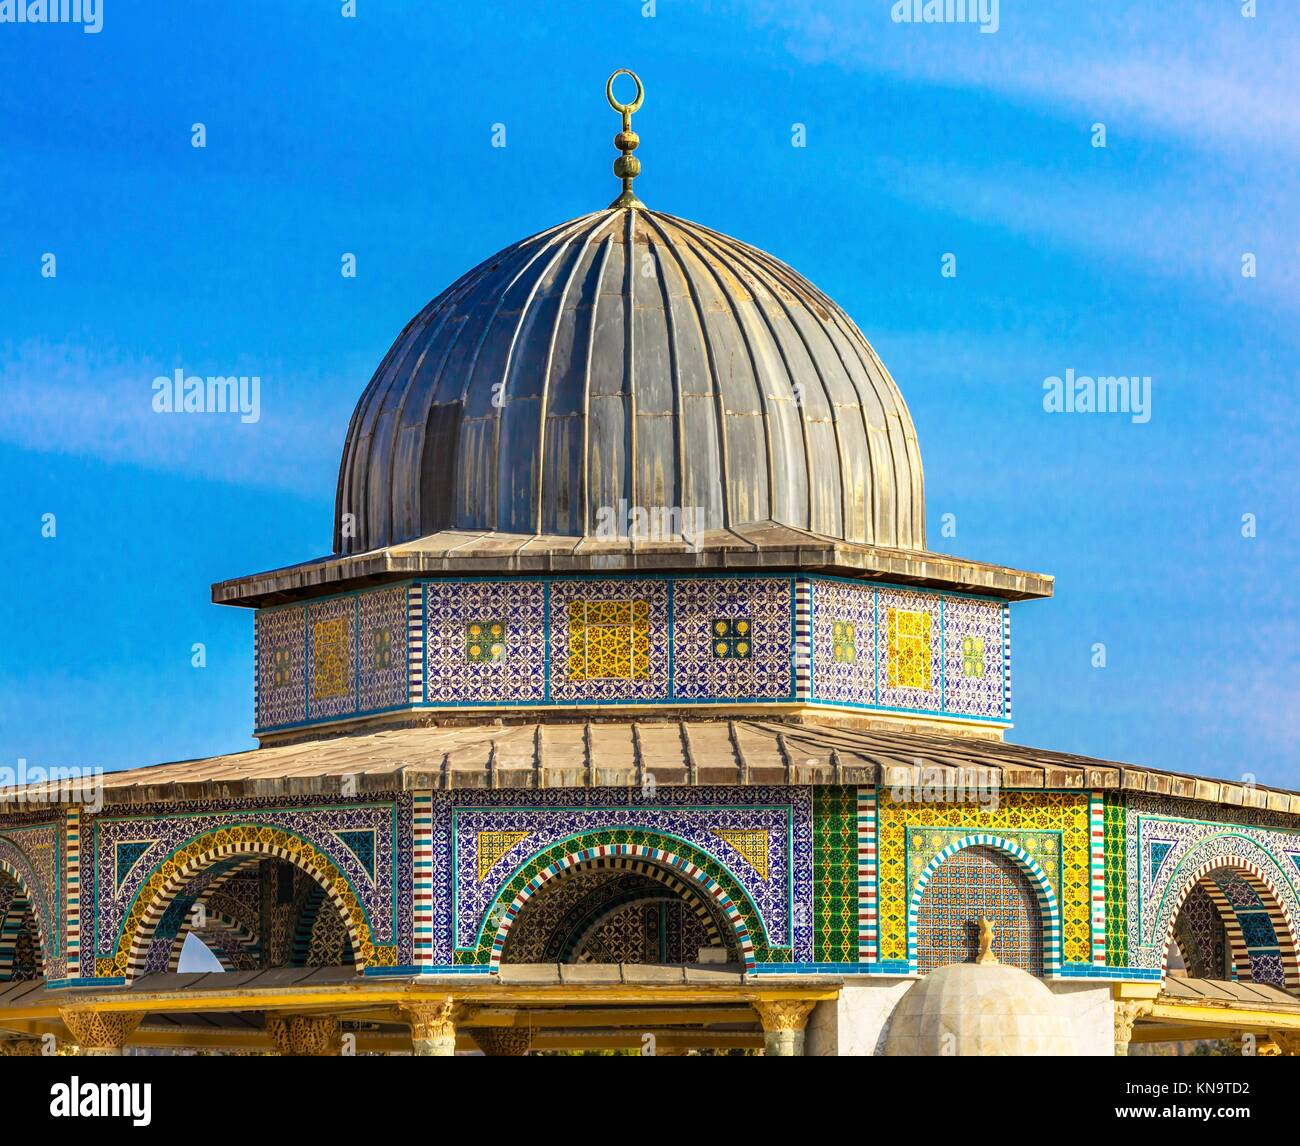 Small Shrine Dome of the Rock Islamic Mosque Temple Mount Jerusalem Israel. Built in 691 One of most sacred spots Stock Photo